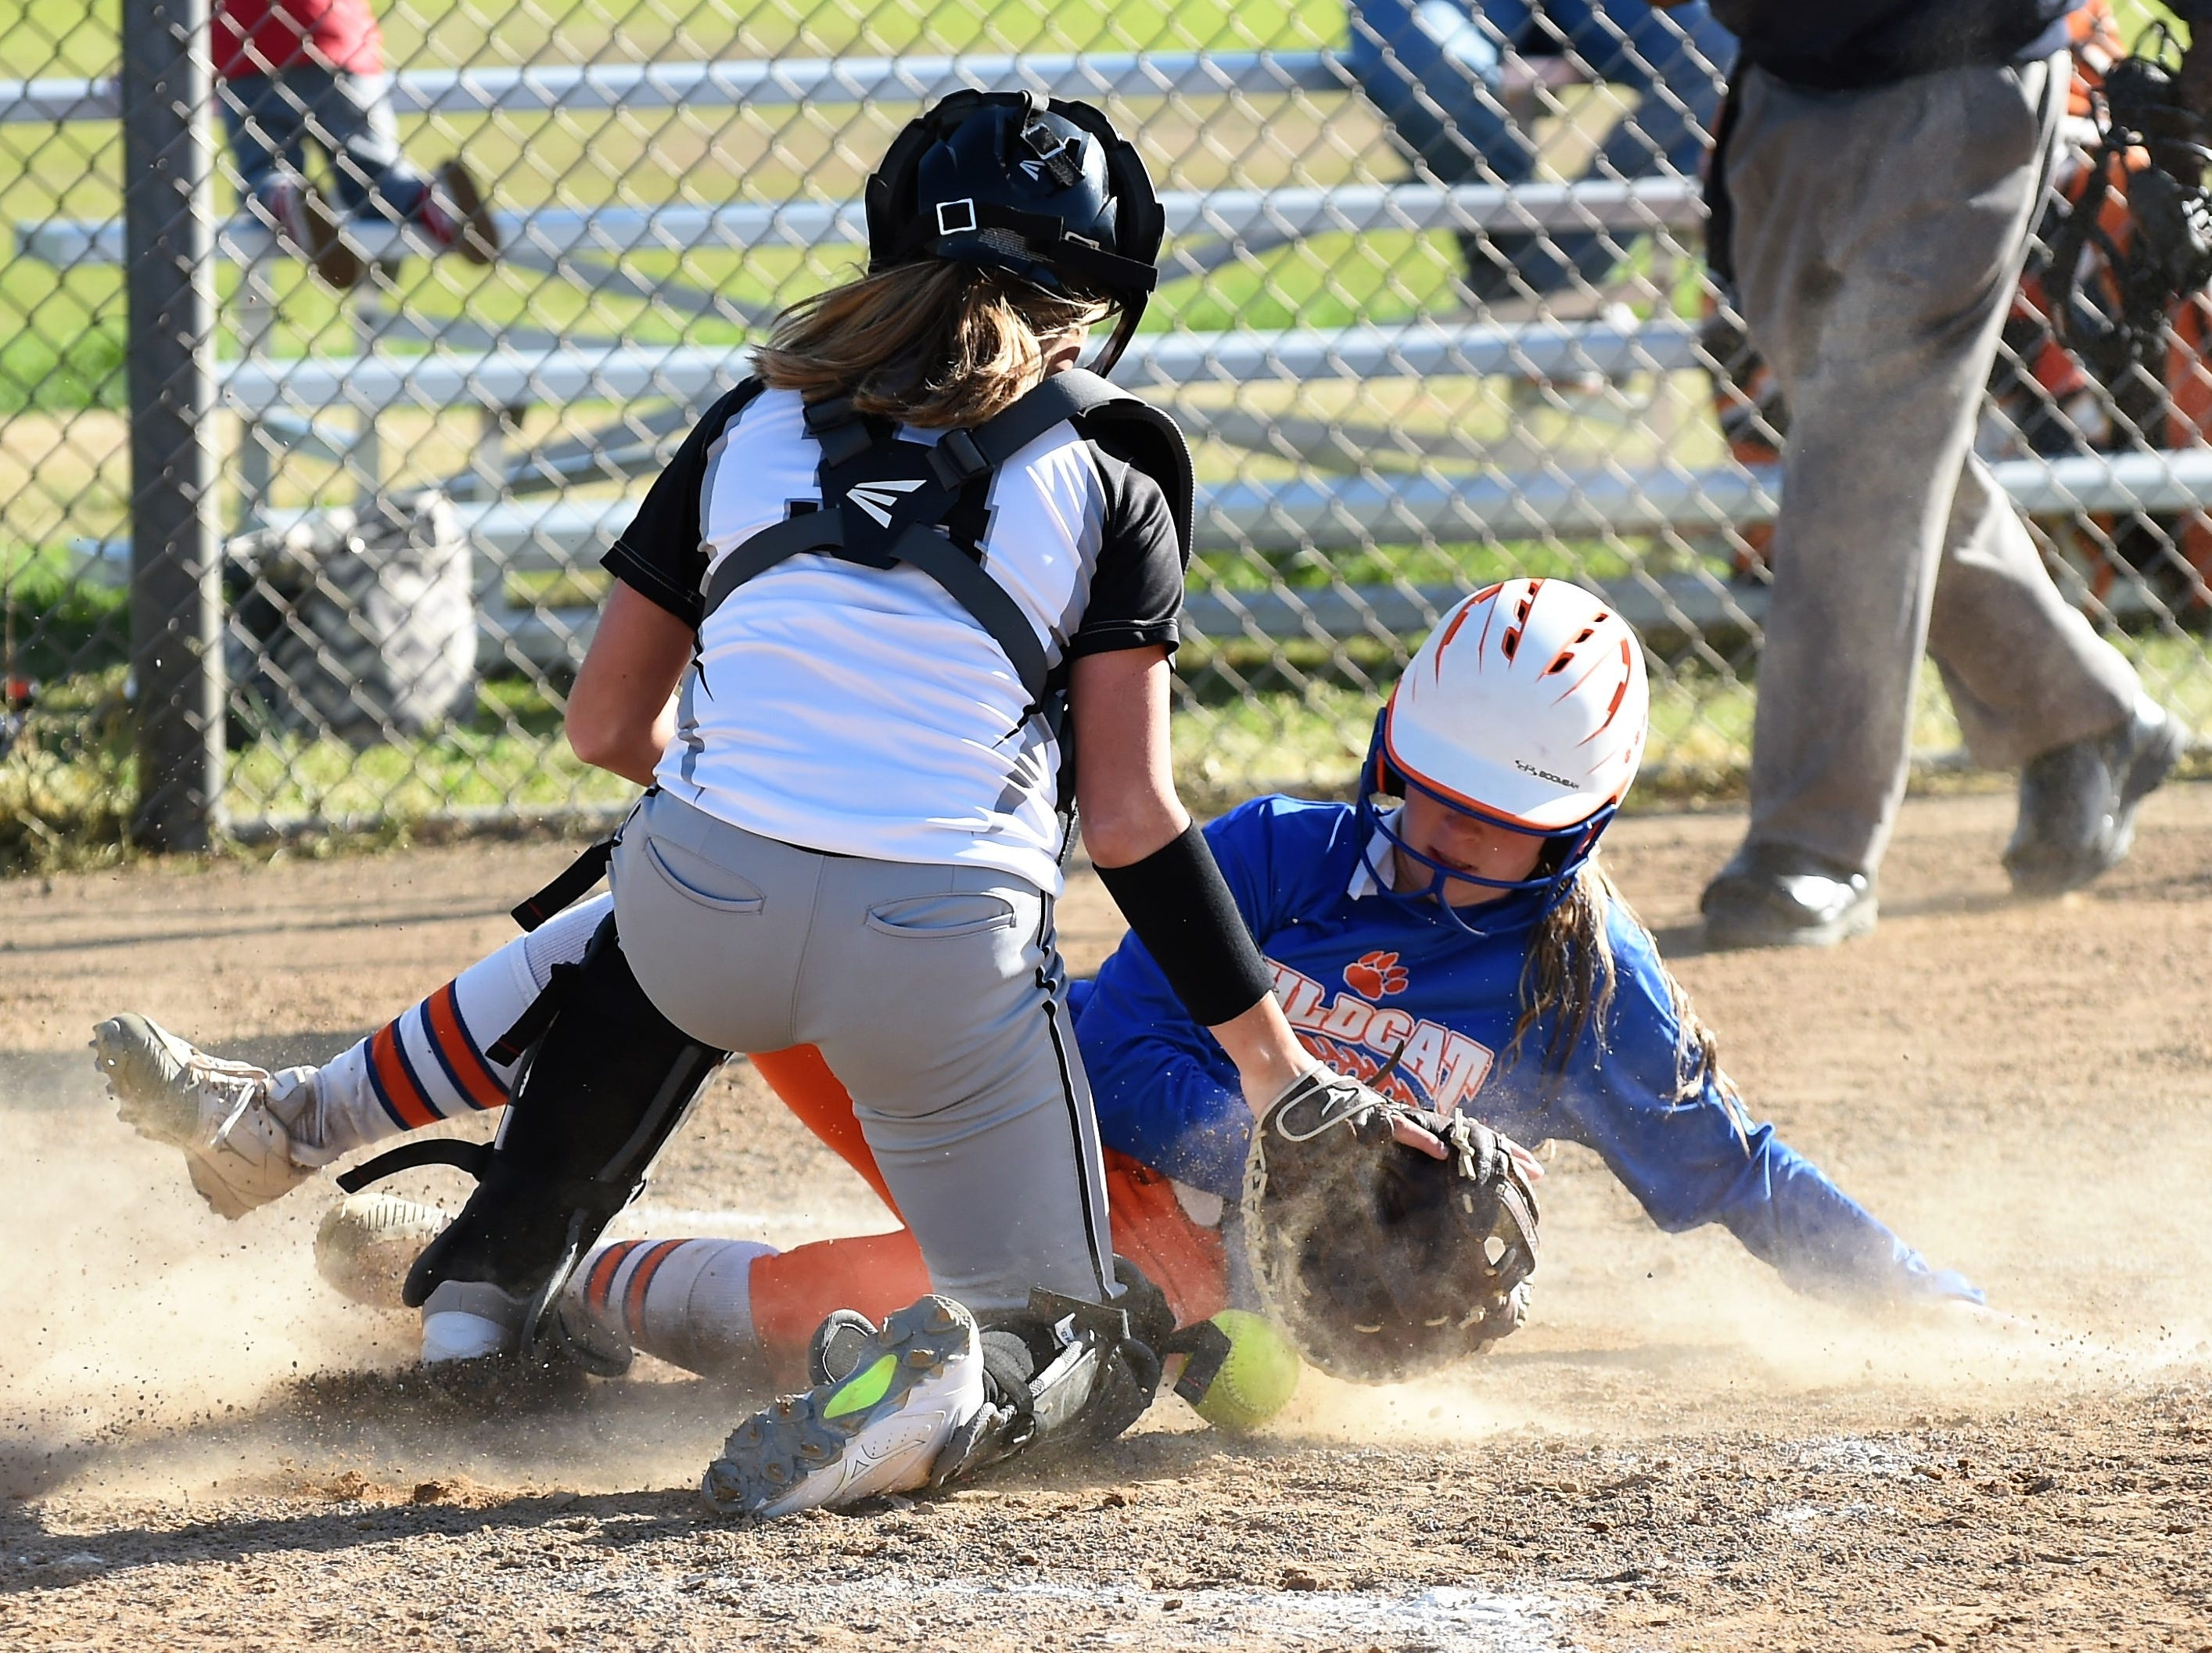 A Delmar player slides into home on Monday, April 15, 2019. The Wildcats defeated Padua Academy, 6-2.